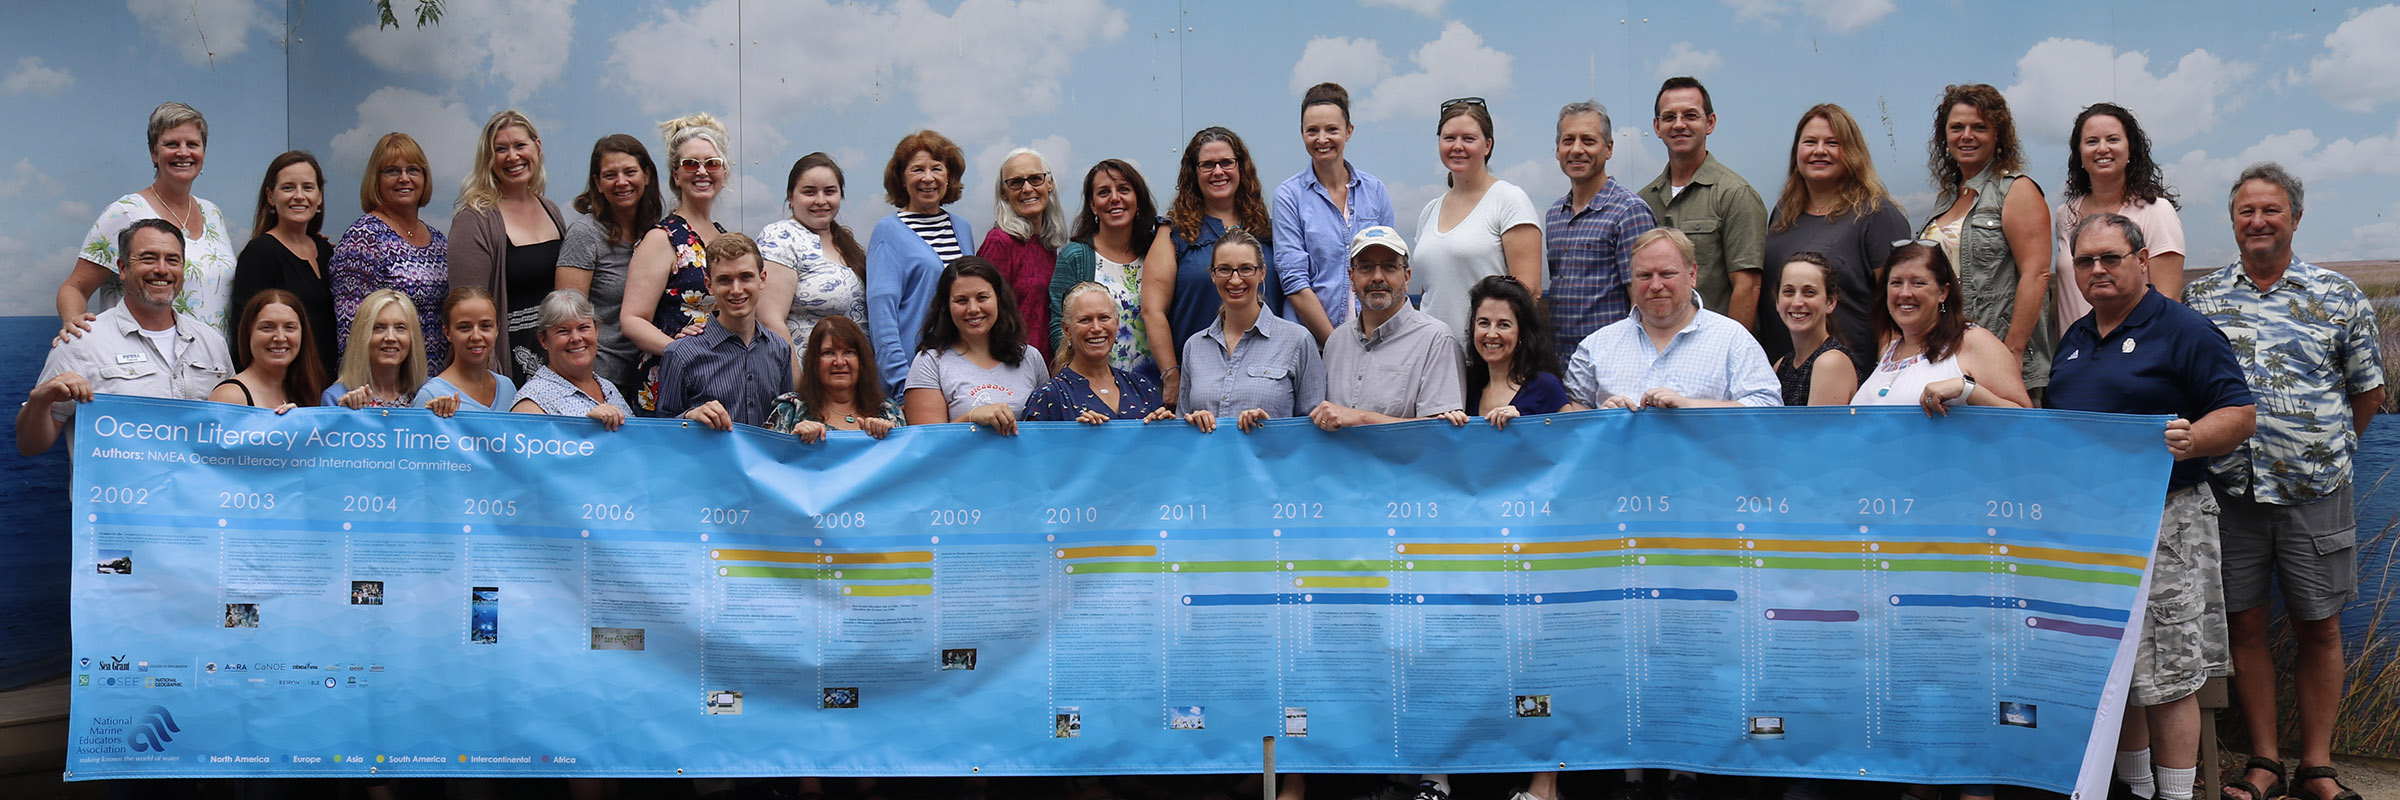 NMEA Board members hold the Timeline banner of key events in the history of the Ocean Literacy Campaign at the 2018 Conference in Long Beach, CA.